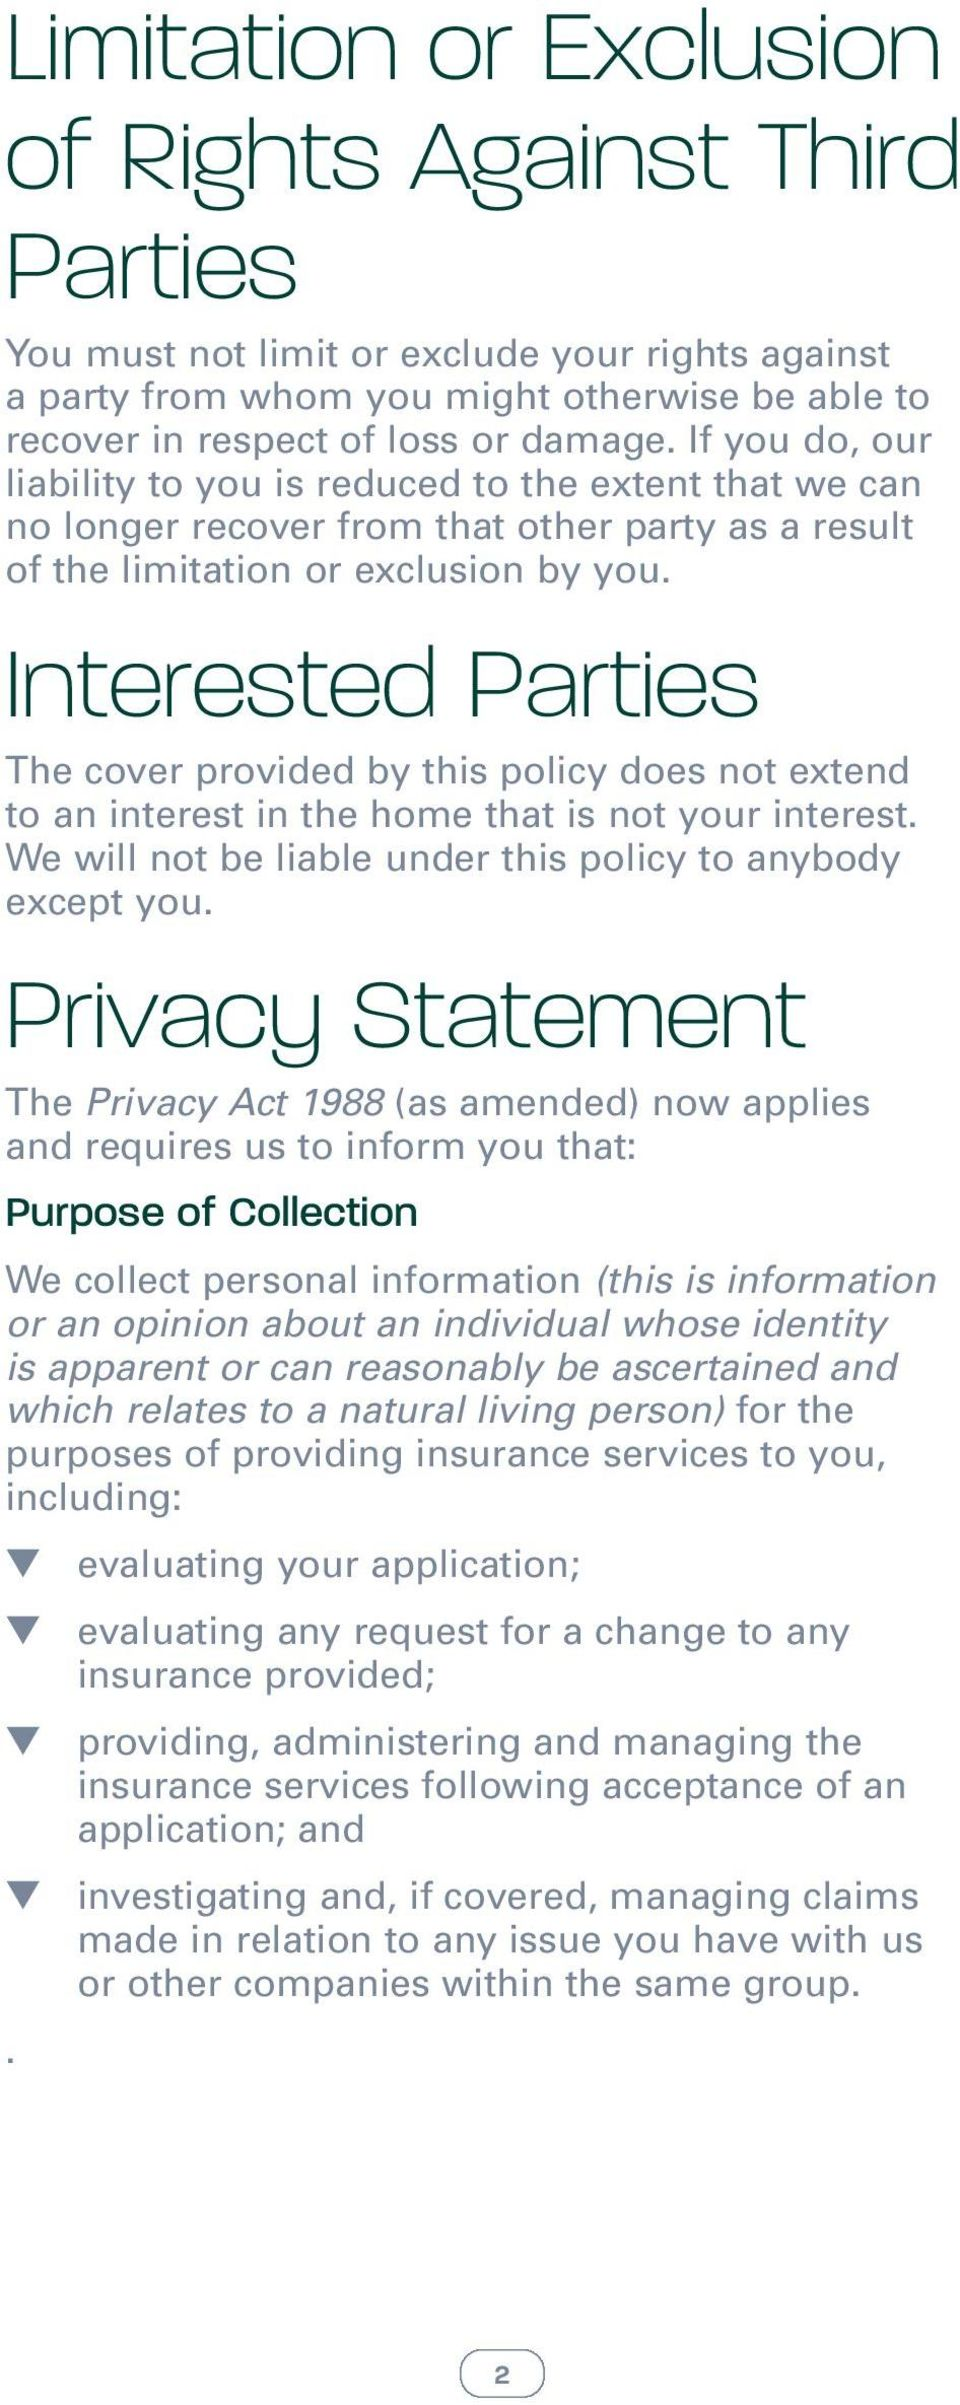 Interested Parties The cover provided by this policy does not extend to an interest in the home that is not your interest. We will not be liable under this policy to anybody except you.